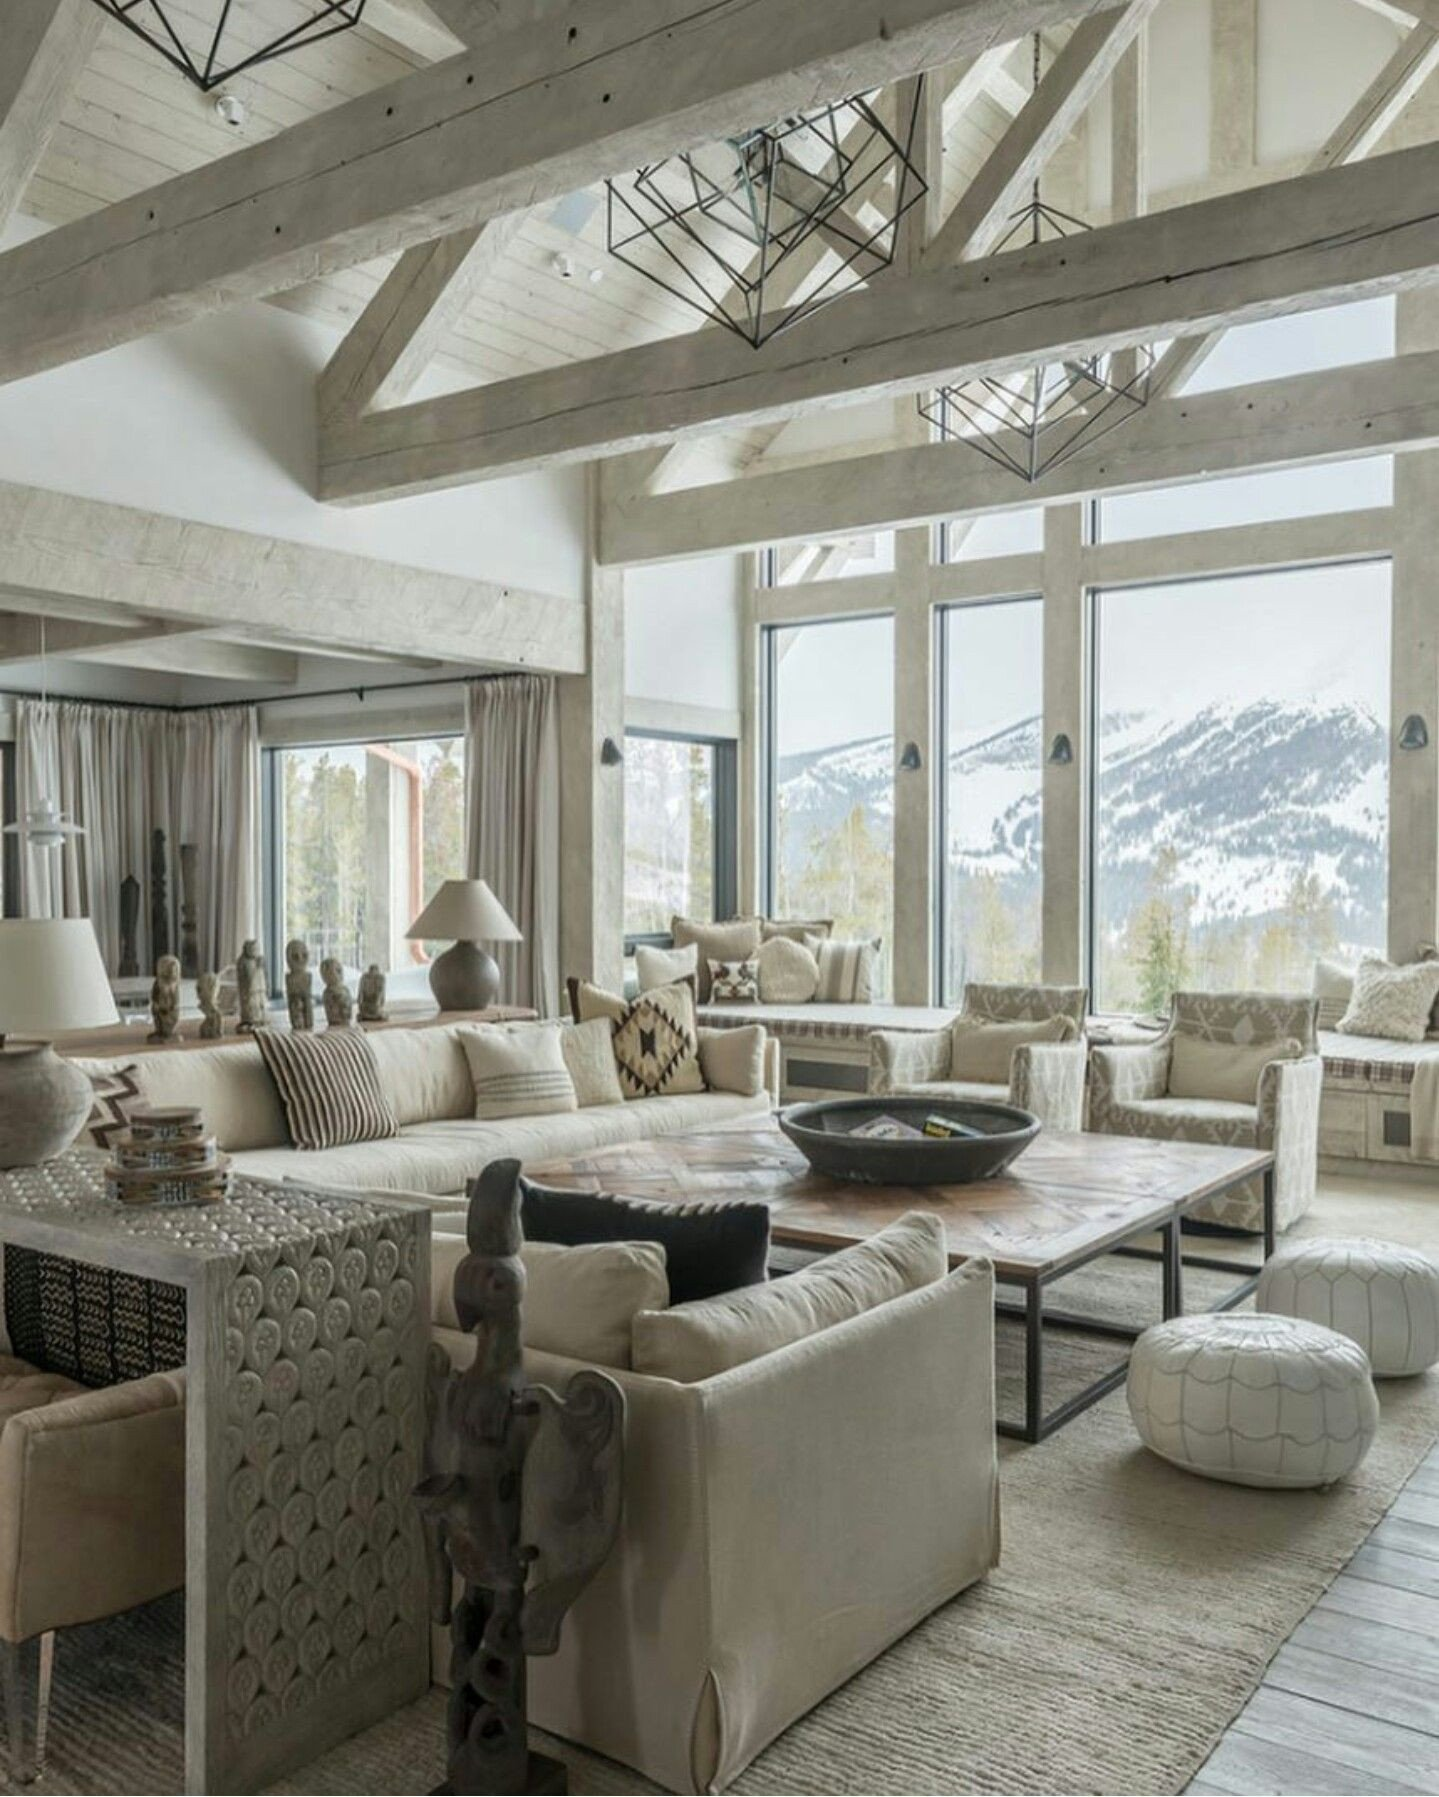 Comfortable Rustic Living Room fortable Neutral Living Room by Shabby Chic Interiors